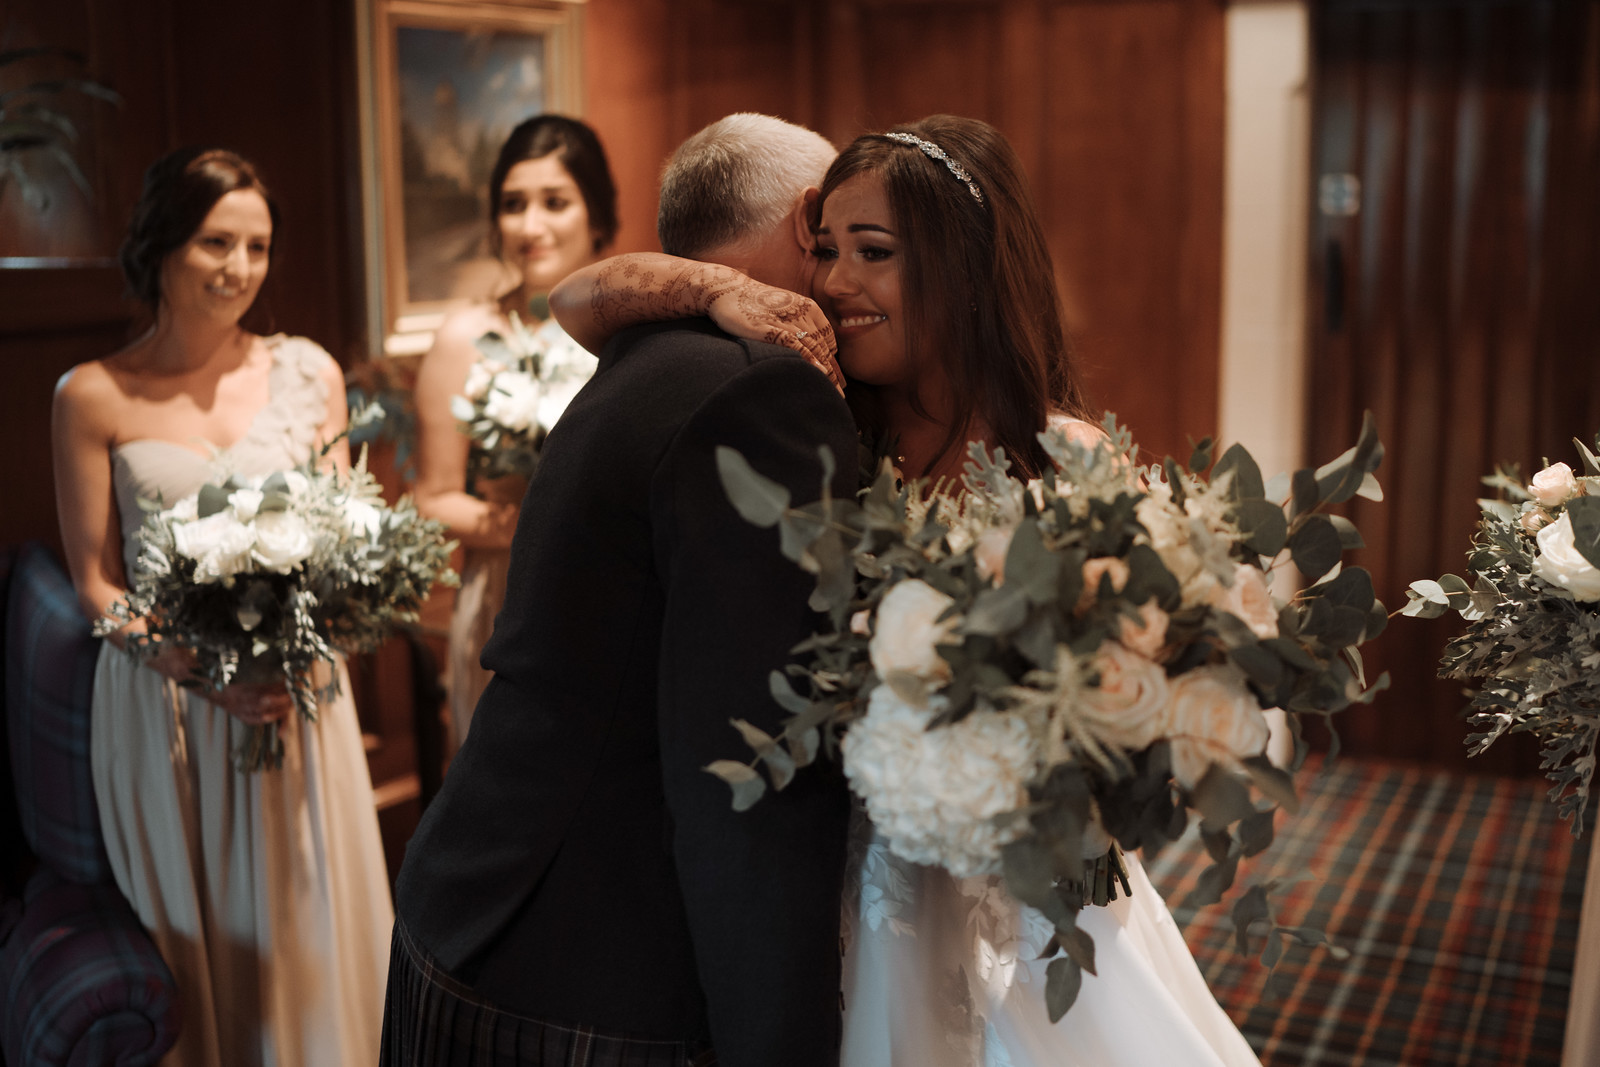 A father and daughter wedding photo